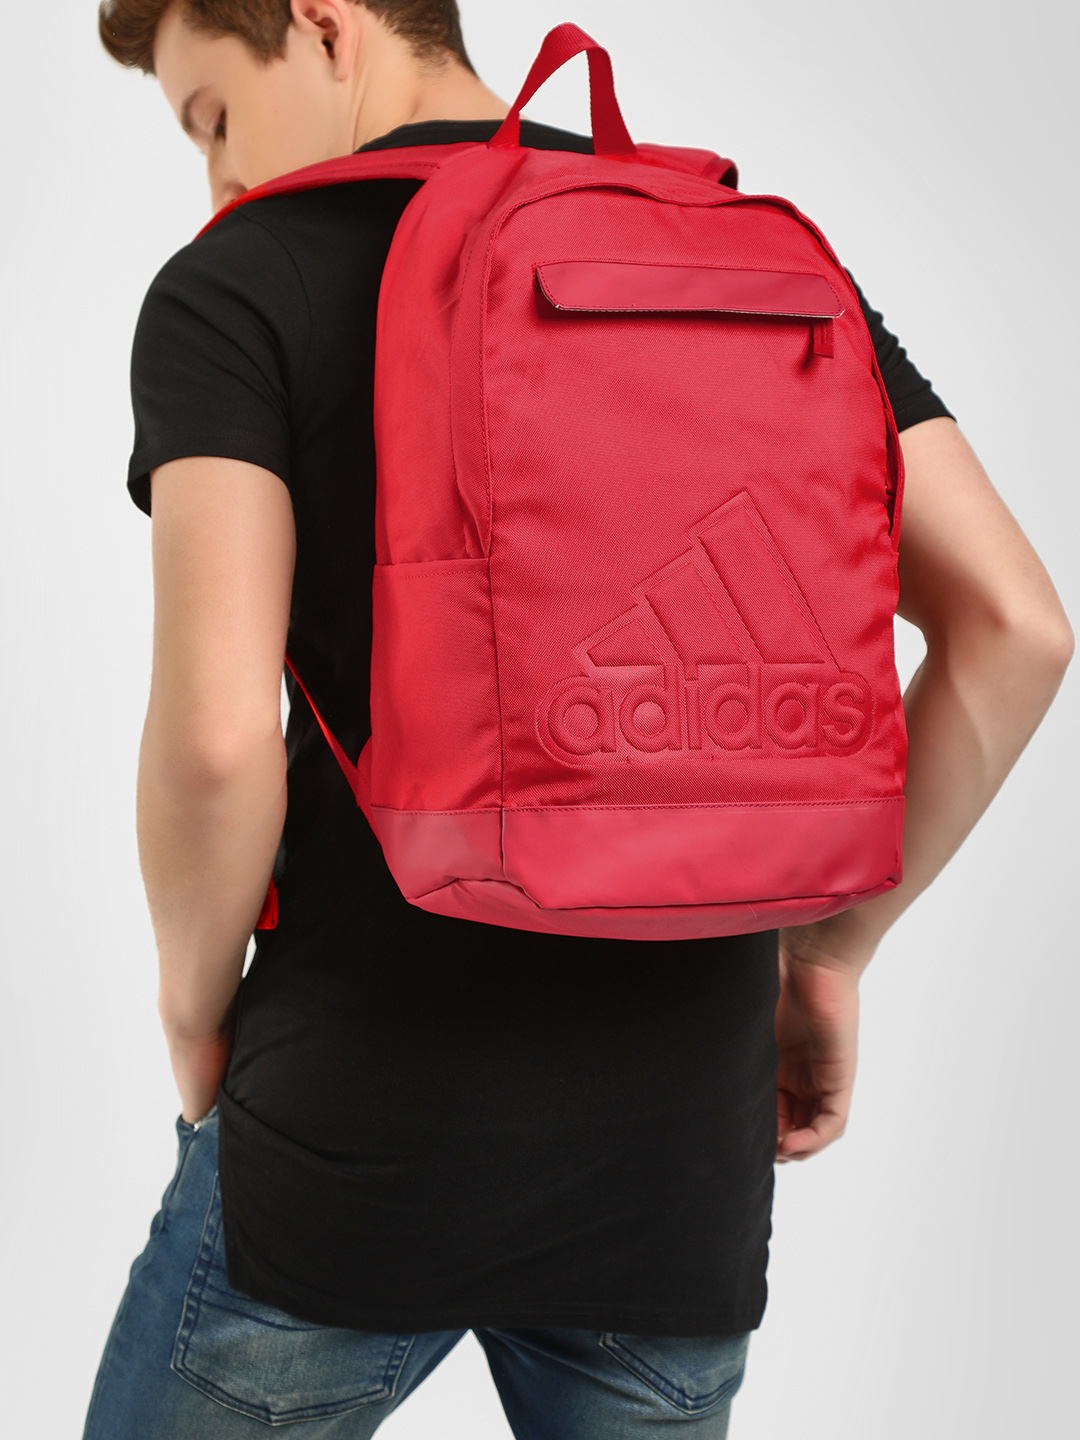 Adidas Red Classic Backpack 1